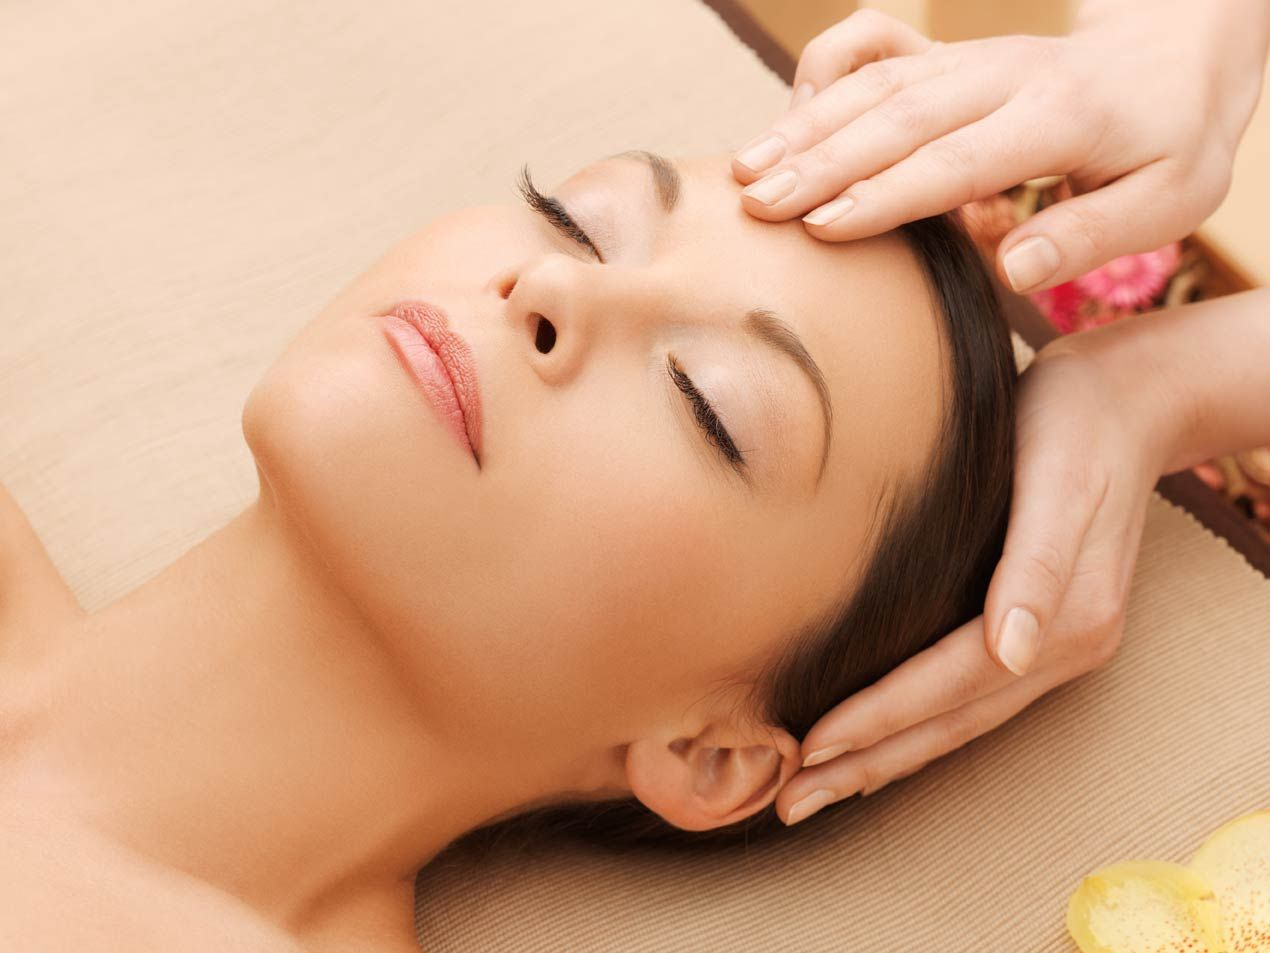 Massage therapy career is among the sought after beauty careers.